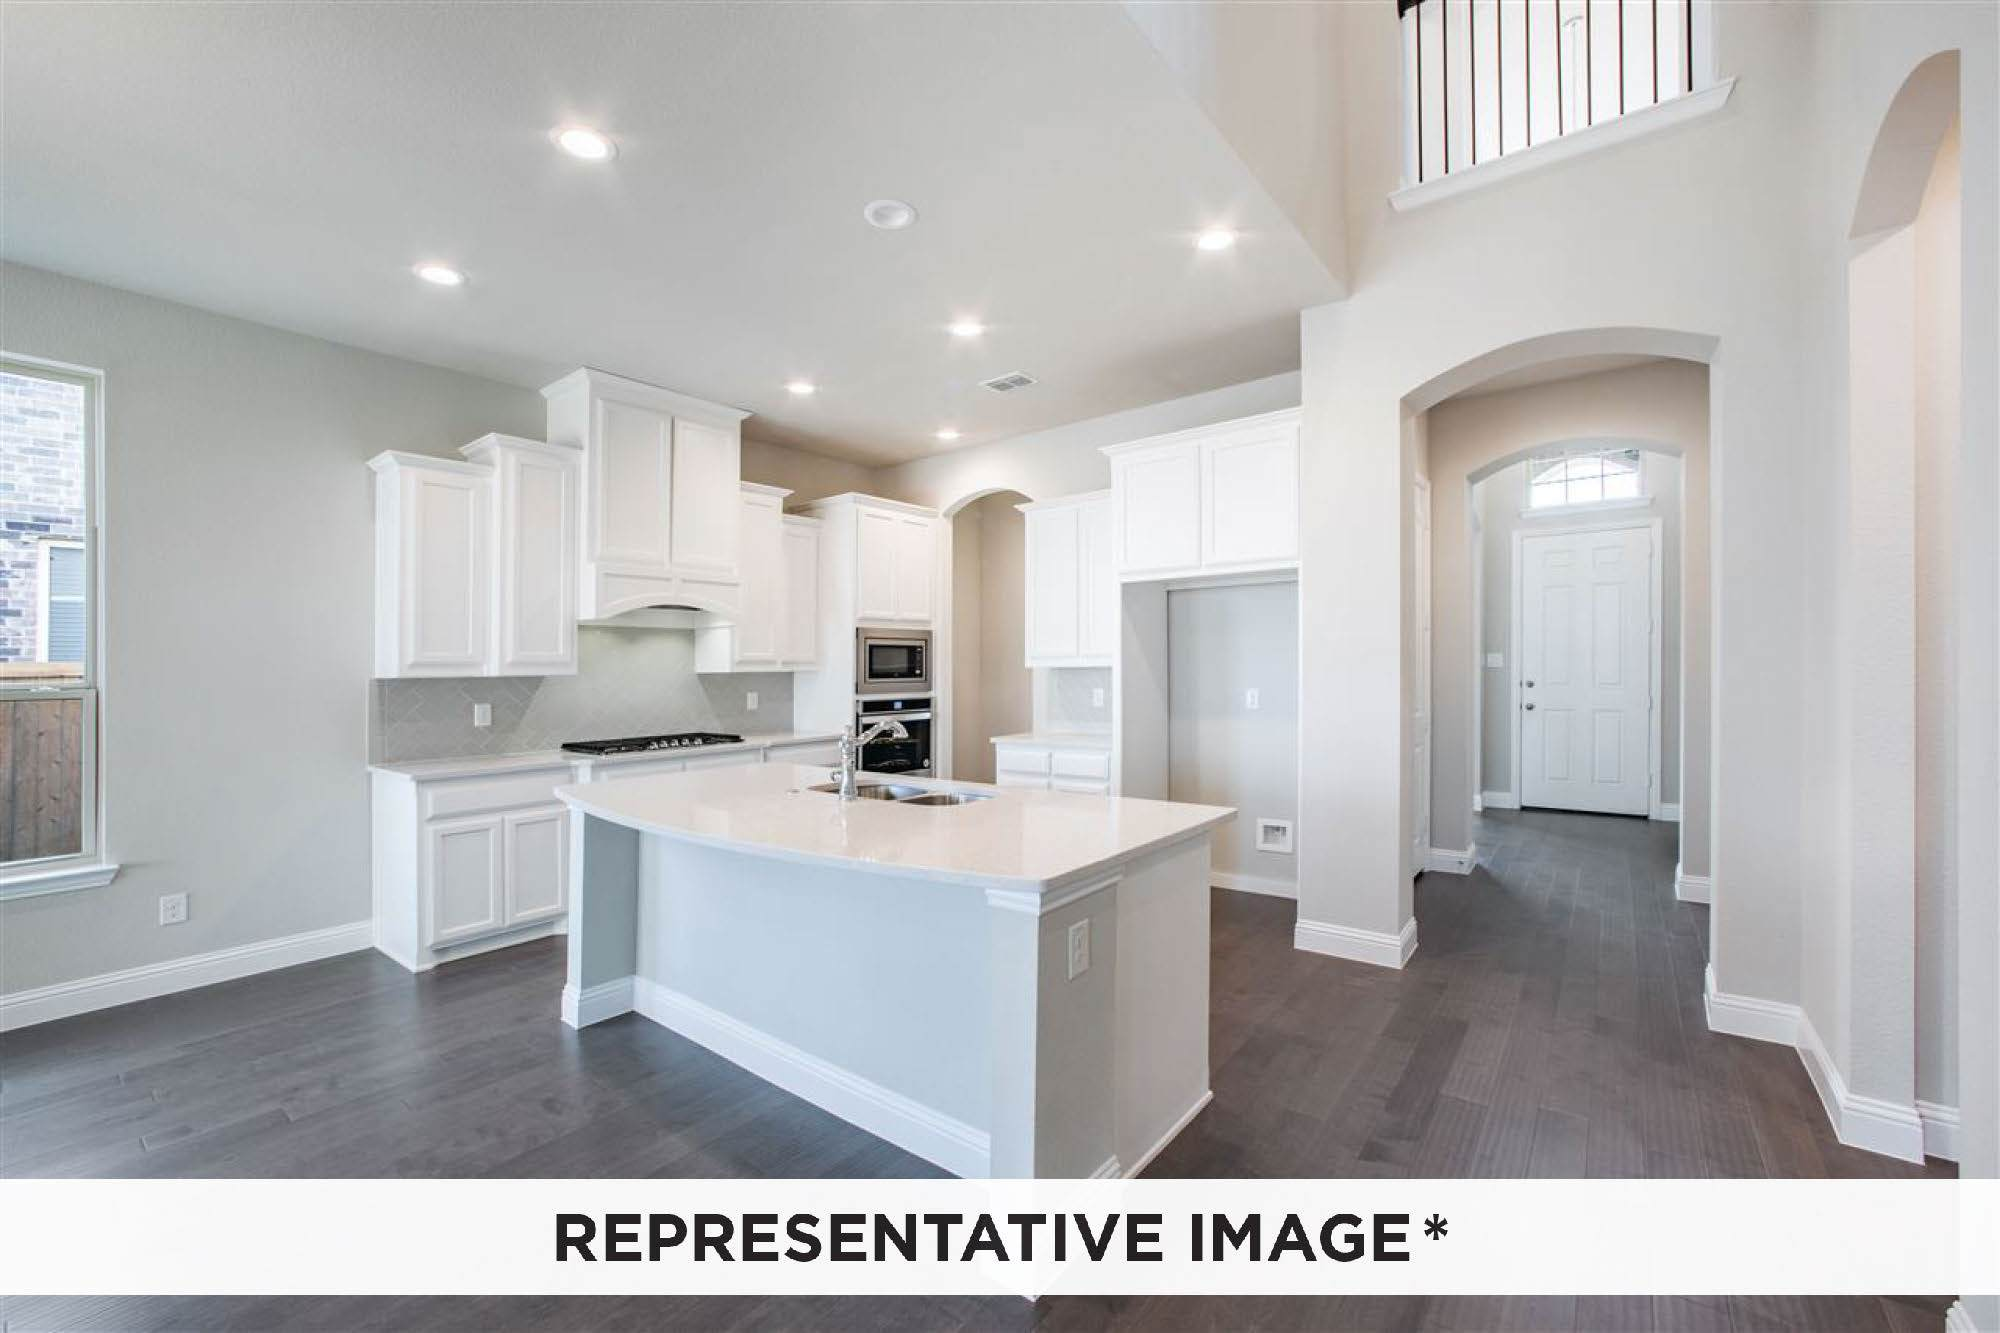 Kitchen featured in the Aria By Rendition Homes in Fort Worth, TX